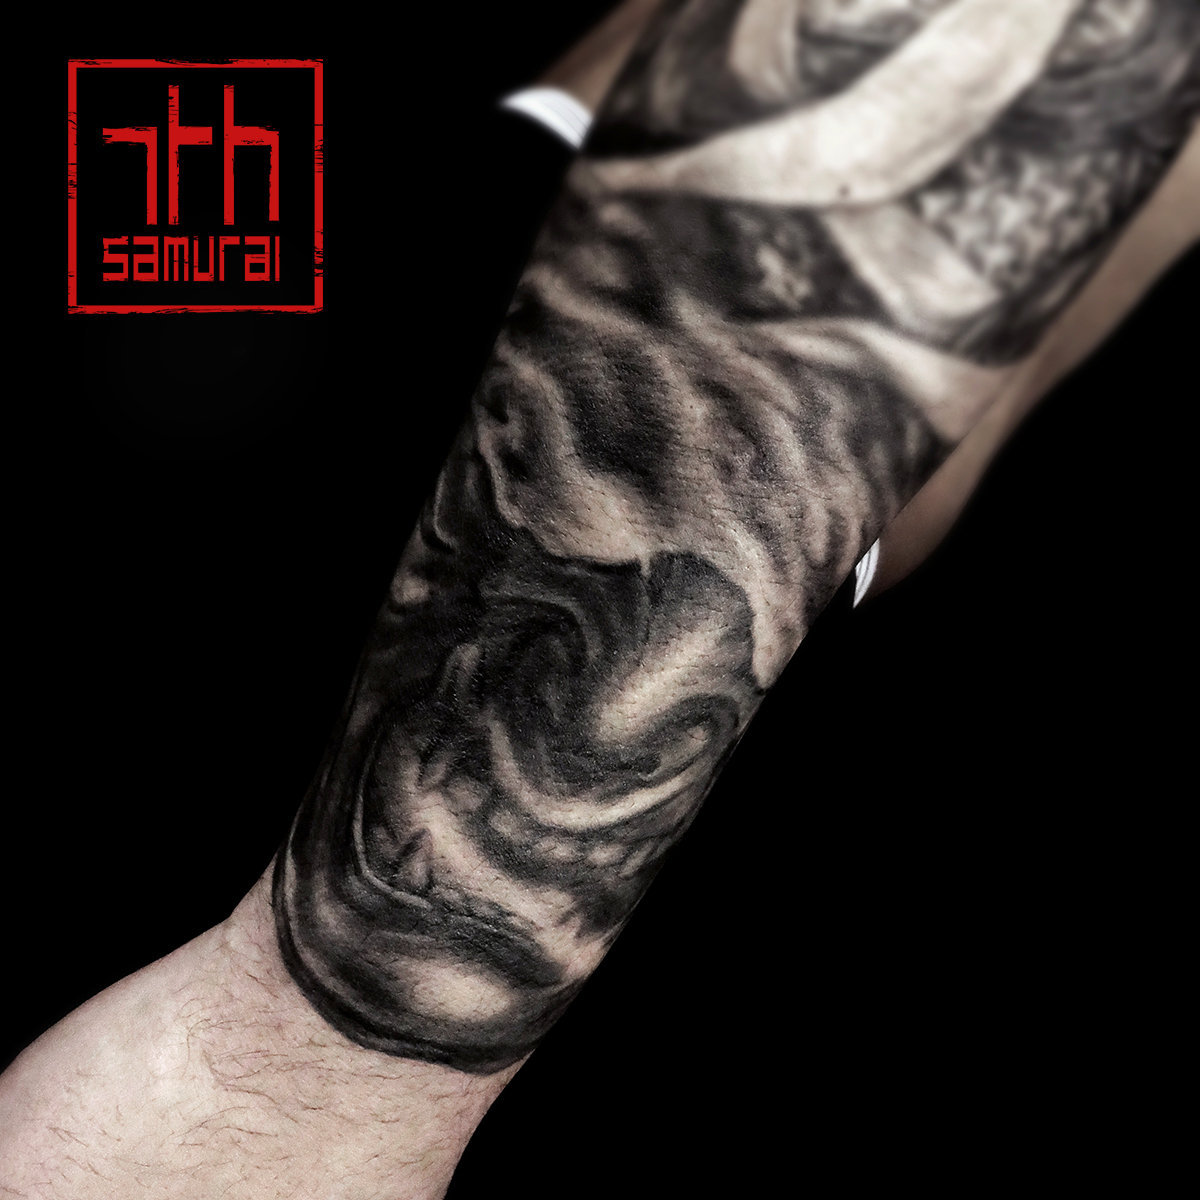 Men's Japanese Menpo mempo mengu samurai mask kai 7th samurai edmonton best wrist tattoo 2019